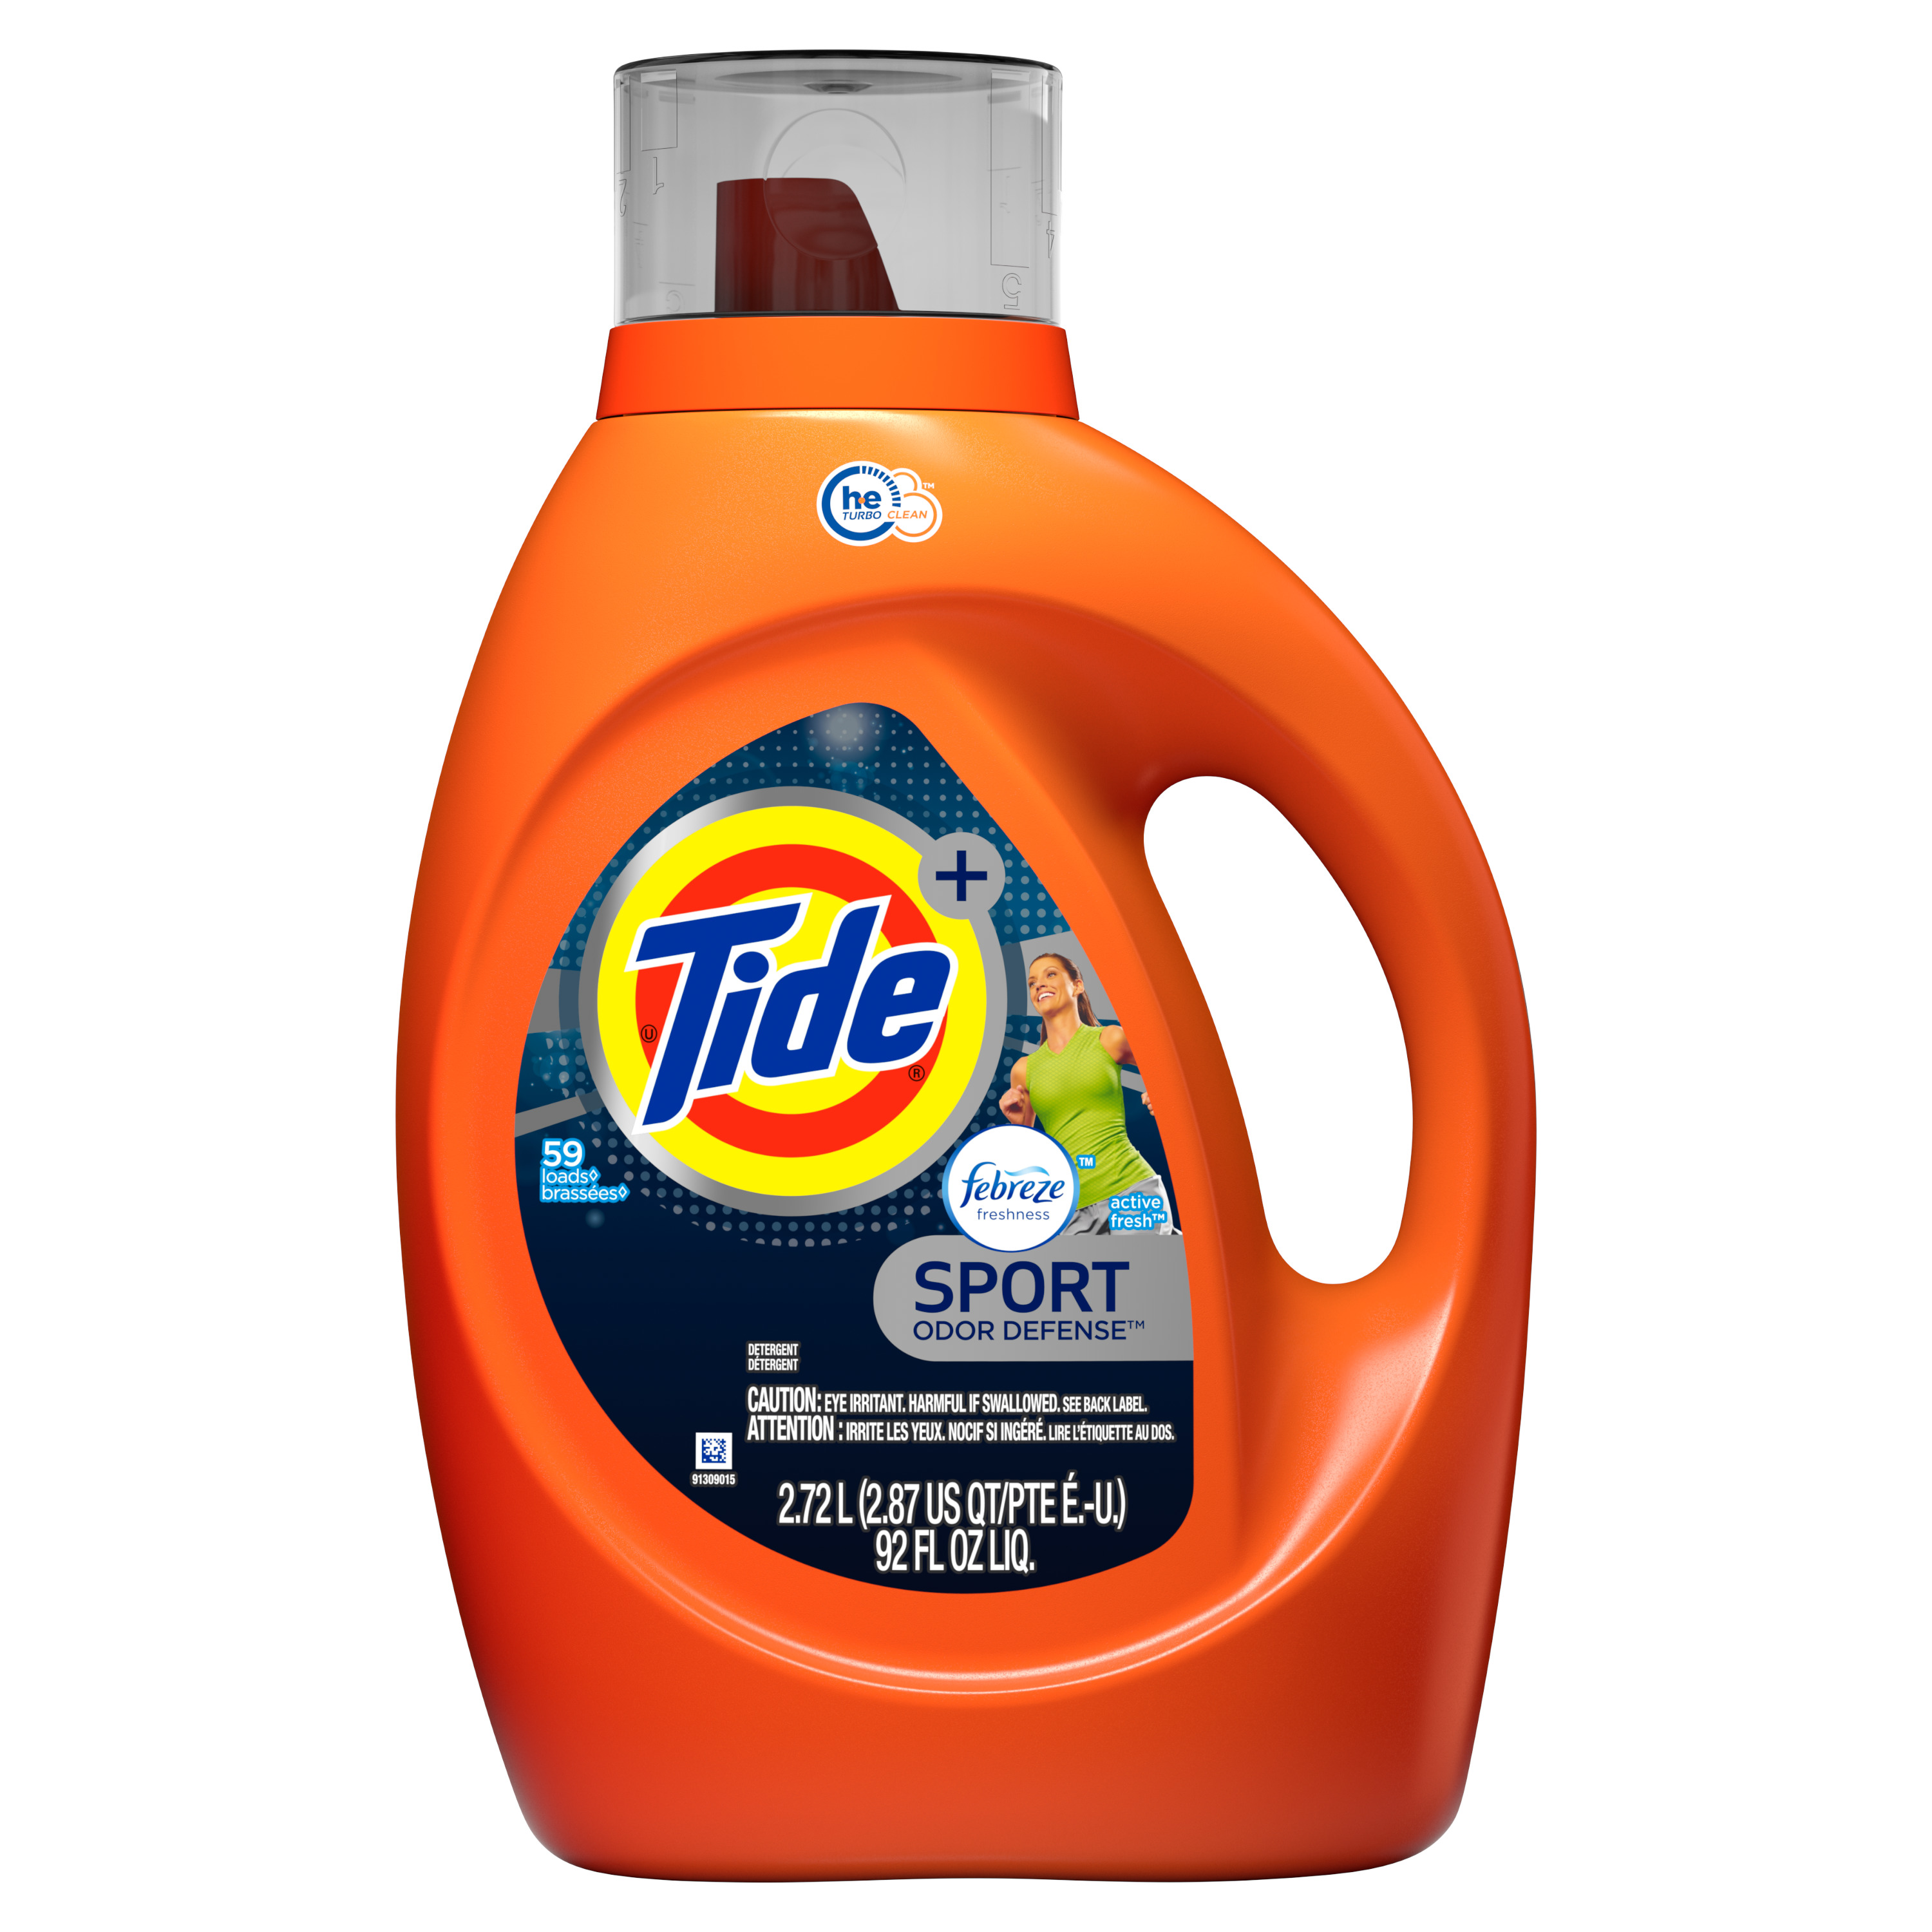 Tide plus Febreze Sport Odor Defense HE Turbo Clean Liquid Laundry Detergent, Active Fresh Scent, 59 loads, 92 oz